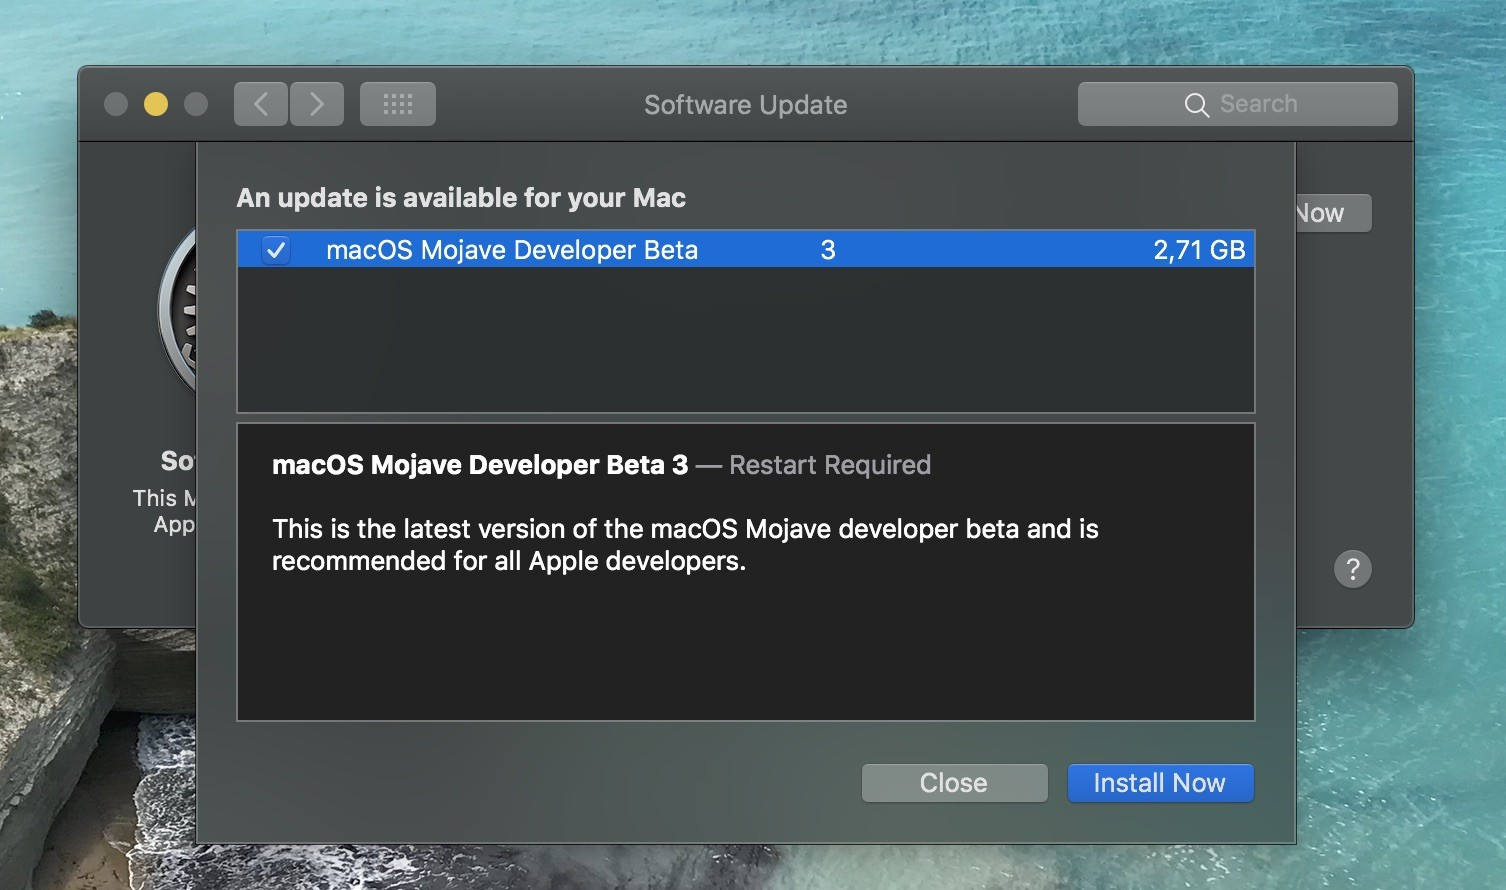 Apple Re-Releases macOS Mojave 10 14 Beta 3 to Developers with